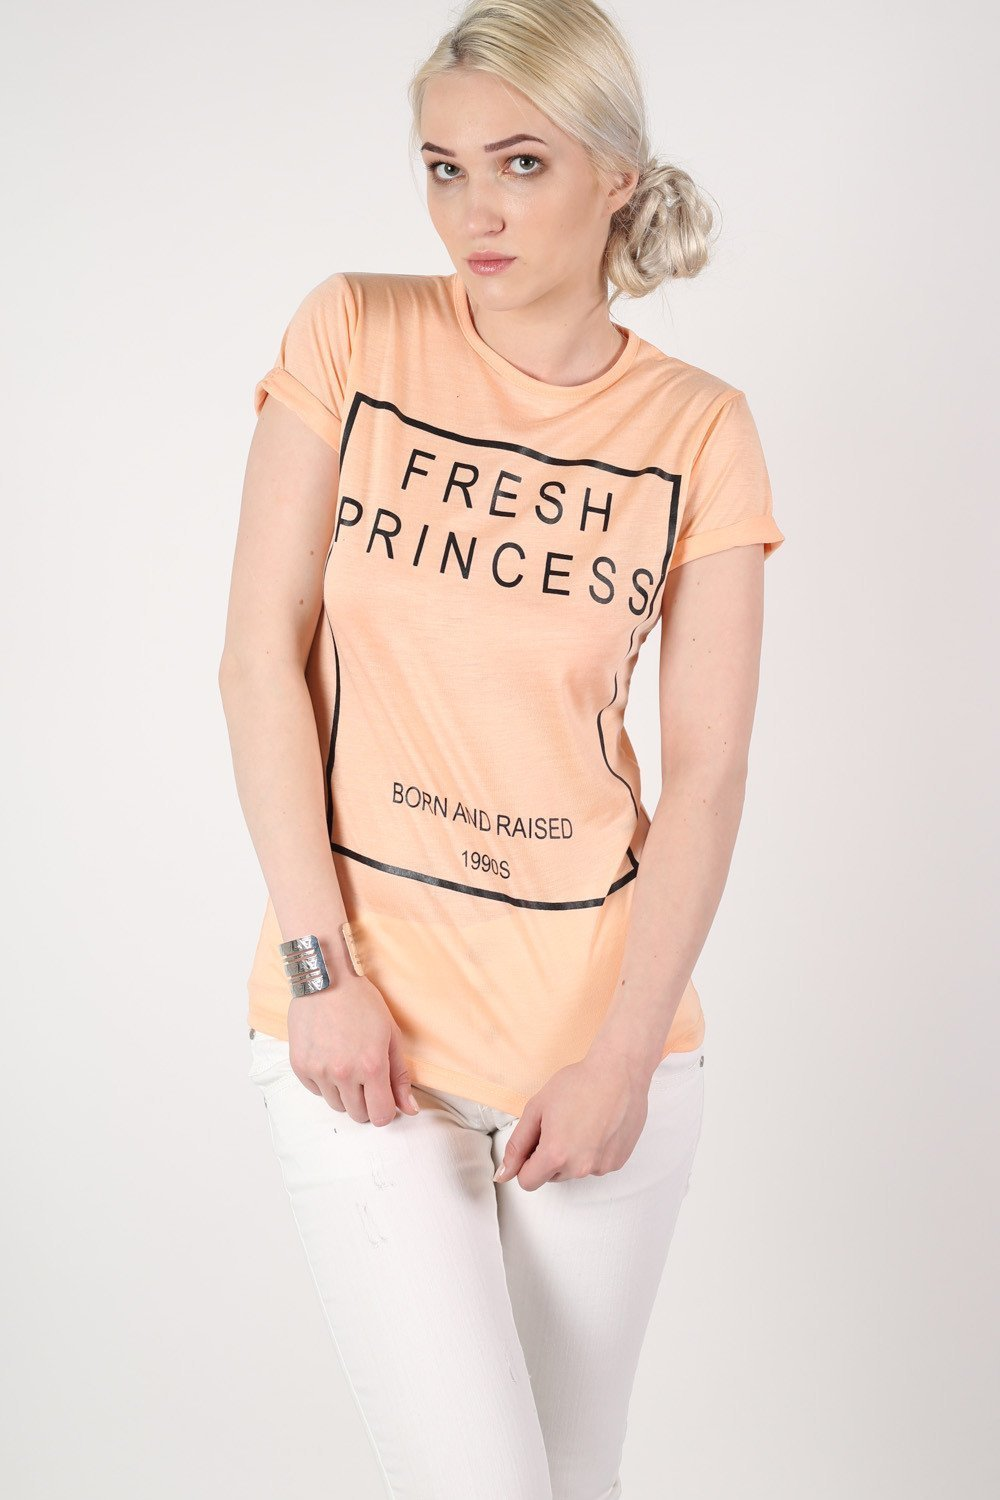 Fresh Princess Slogan T-Shirt in Nude 0